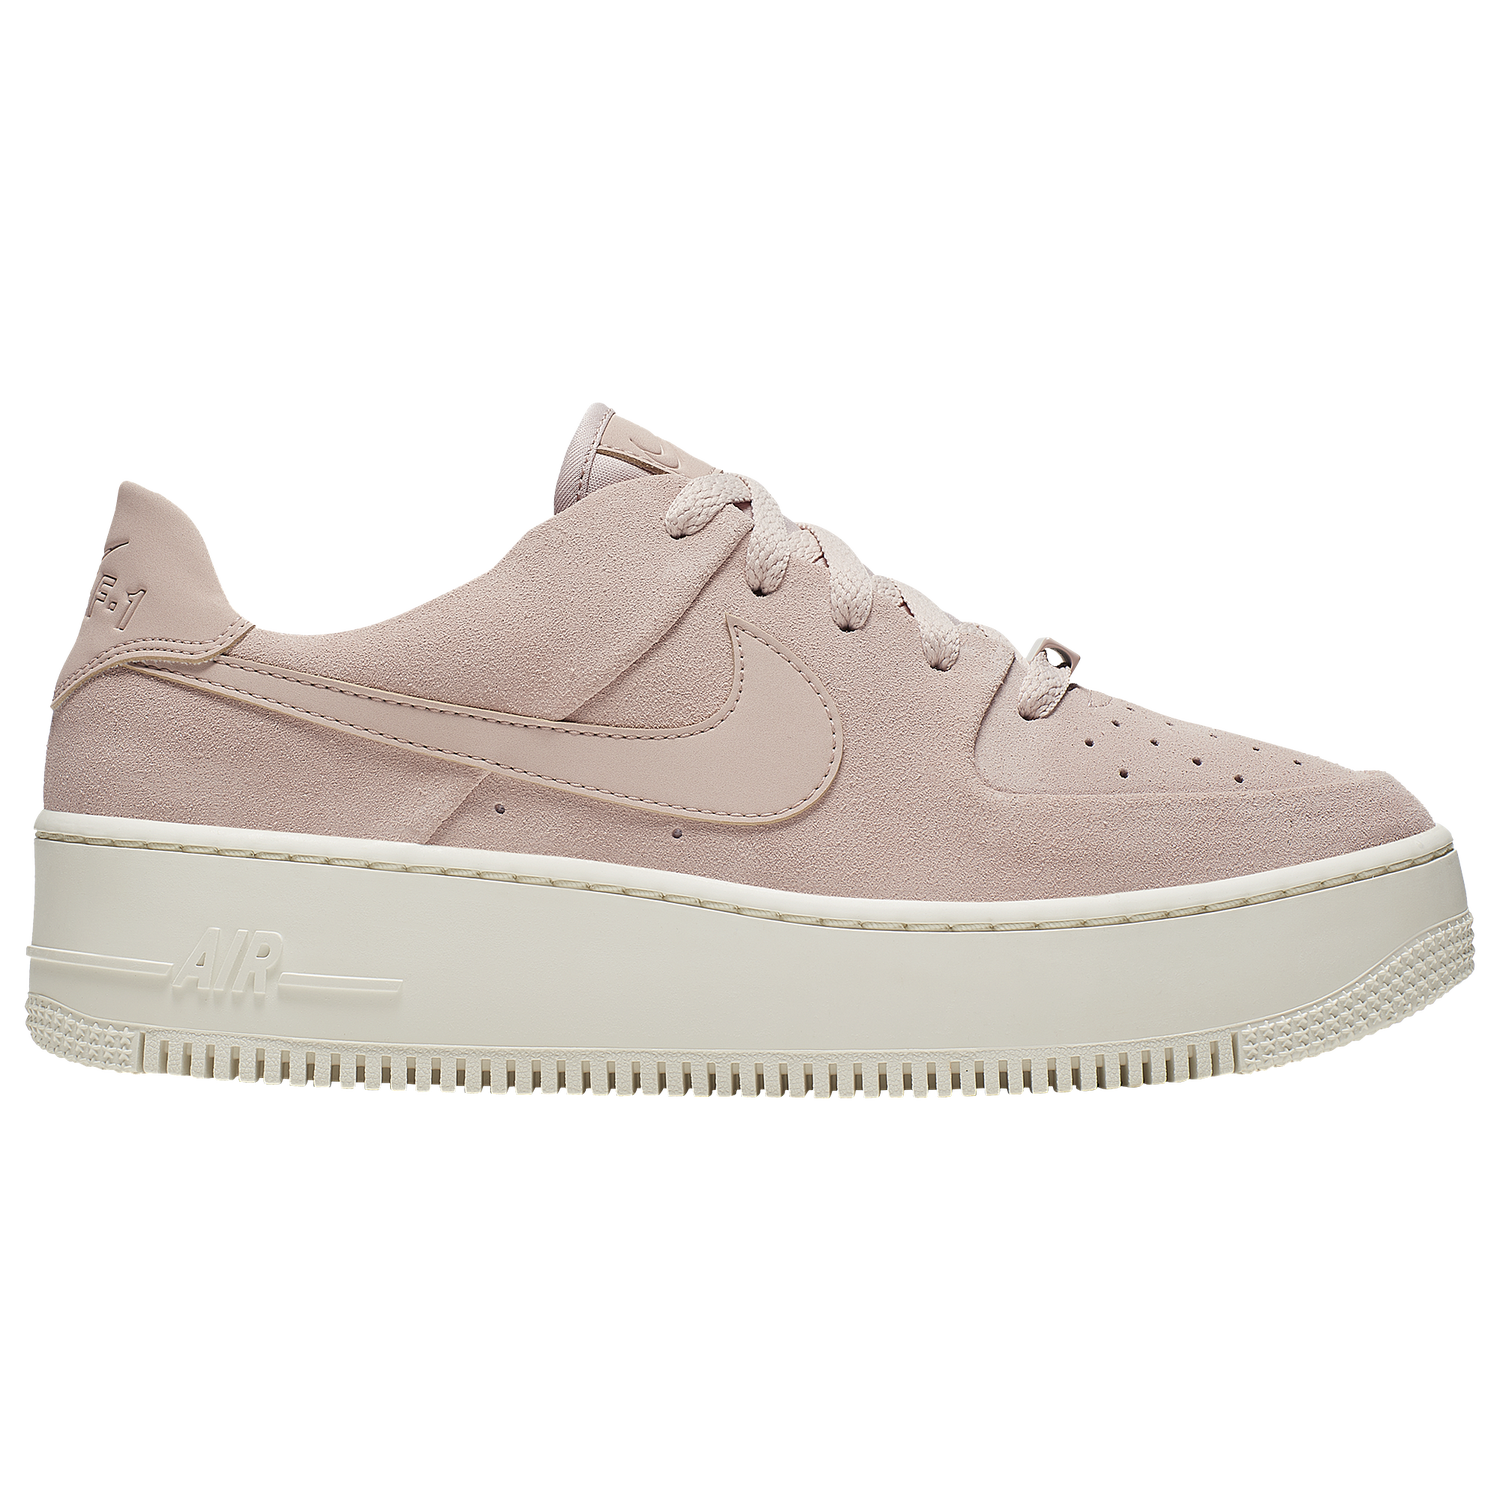 Nike Air Force 1 Sage Low - Women's